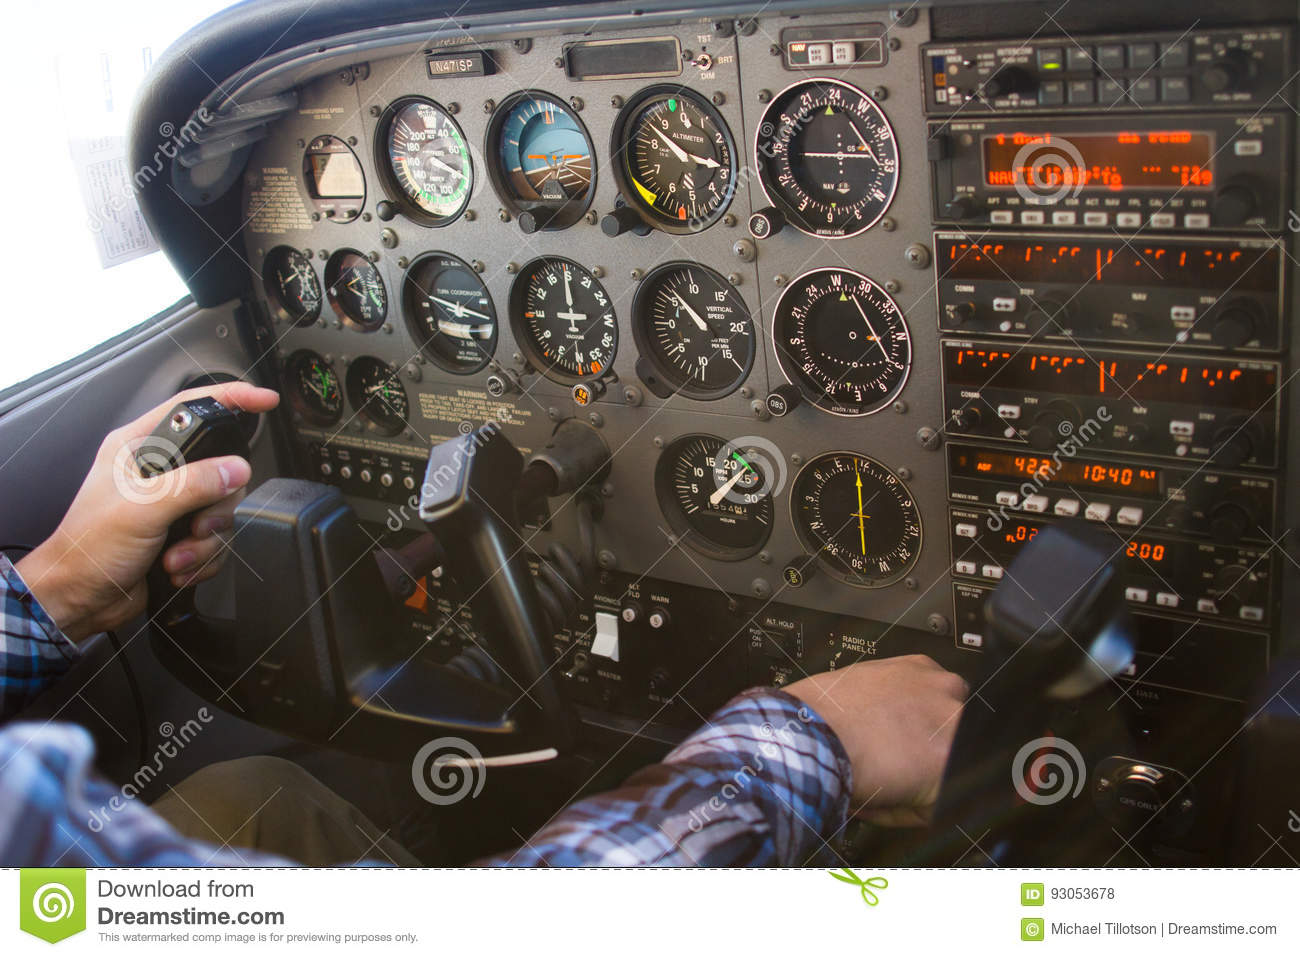 Cessna 172 control panel | Basic Flight Instruments and Controls of